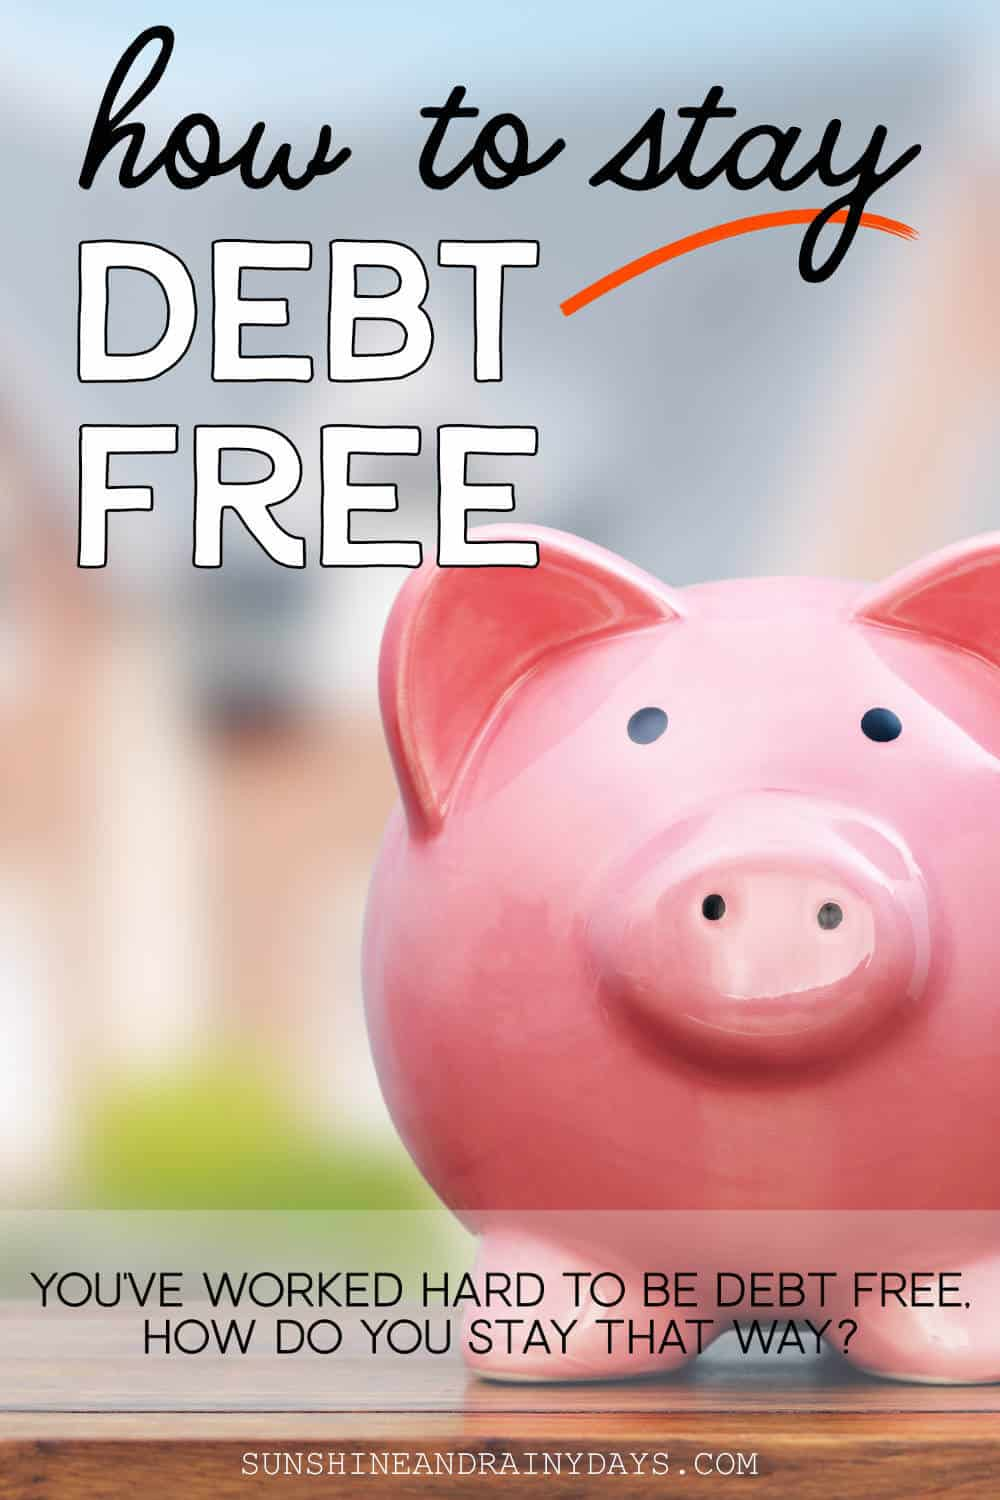 How to stay debt free - you've worked hard to be debt free, how do you stay that way?